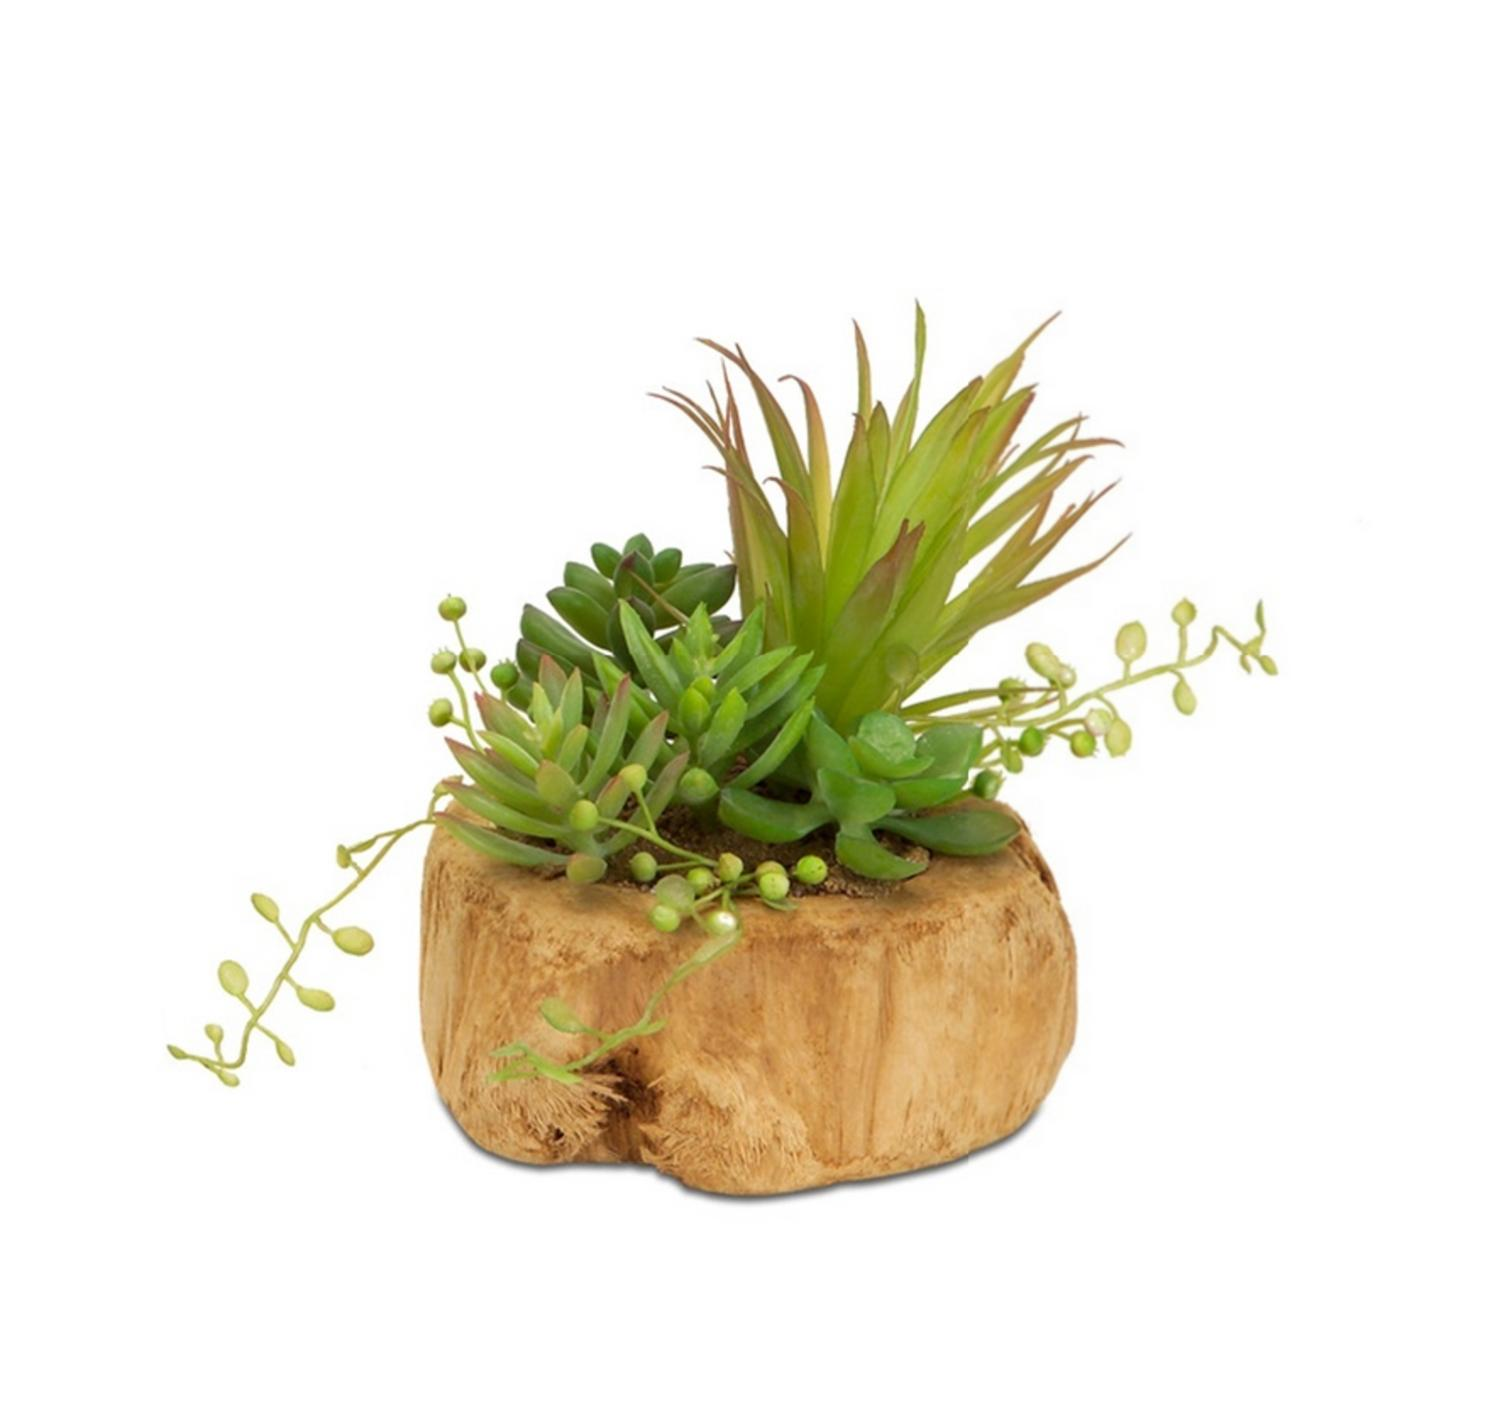 Lush Artificial Succulent Arrangement in a Driftwood Style Planter 6.5""